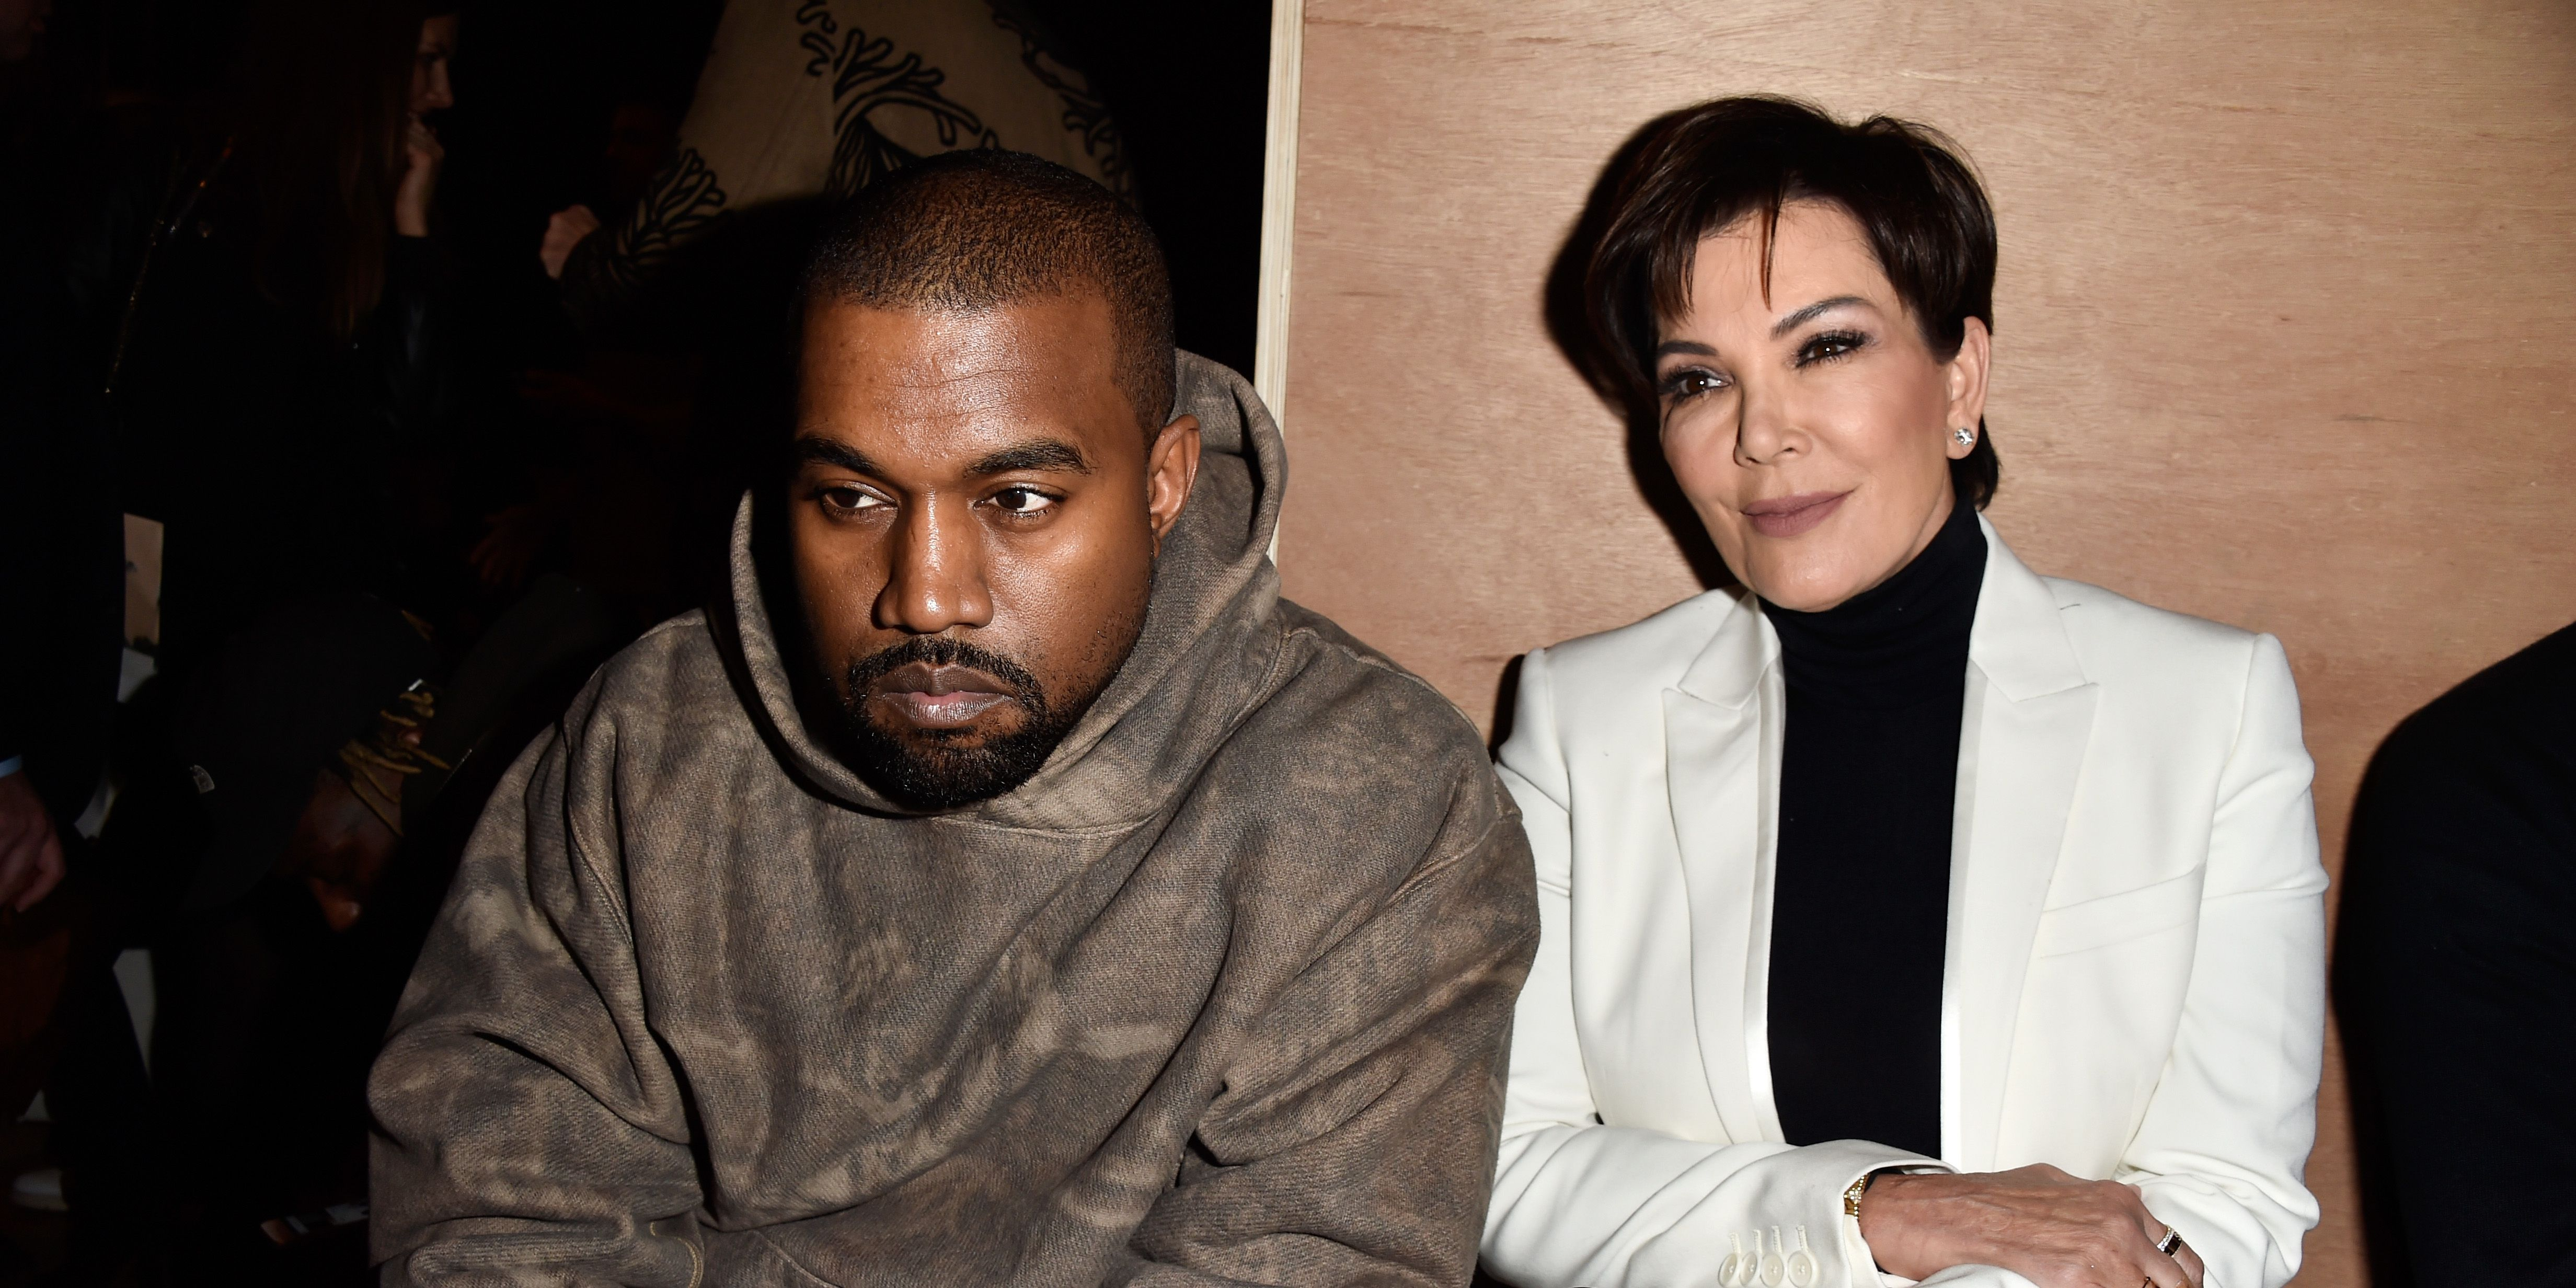 Oh Sh*t, Kris Jenner Just Tweeted a Response to Reports She's Fighting with Kanye West